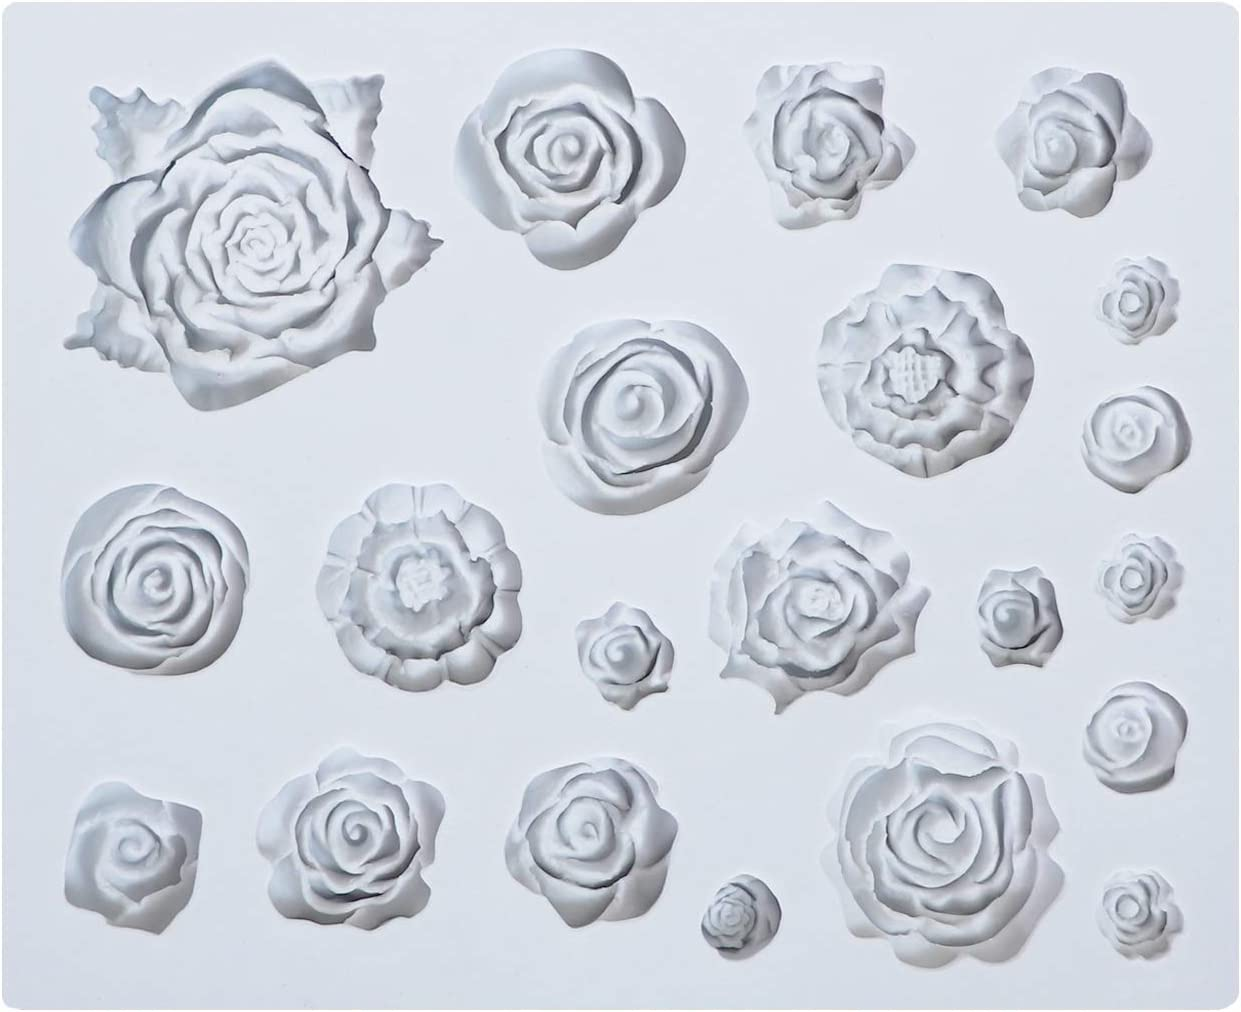 Silicone Resin And Polymer Clay Round 3 Cavity Multiple Rose-like Flower Jewelry Mold Silicone Flower Mold